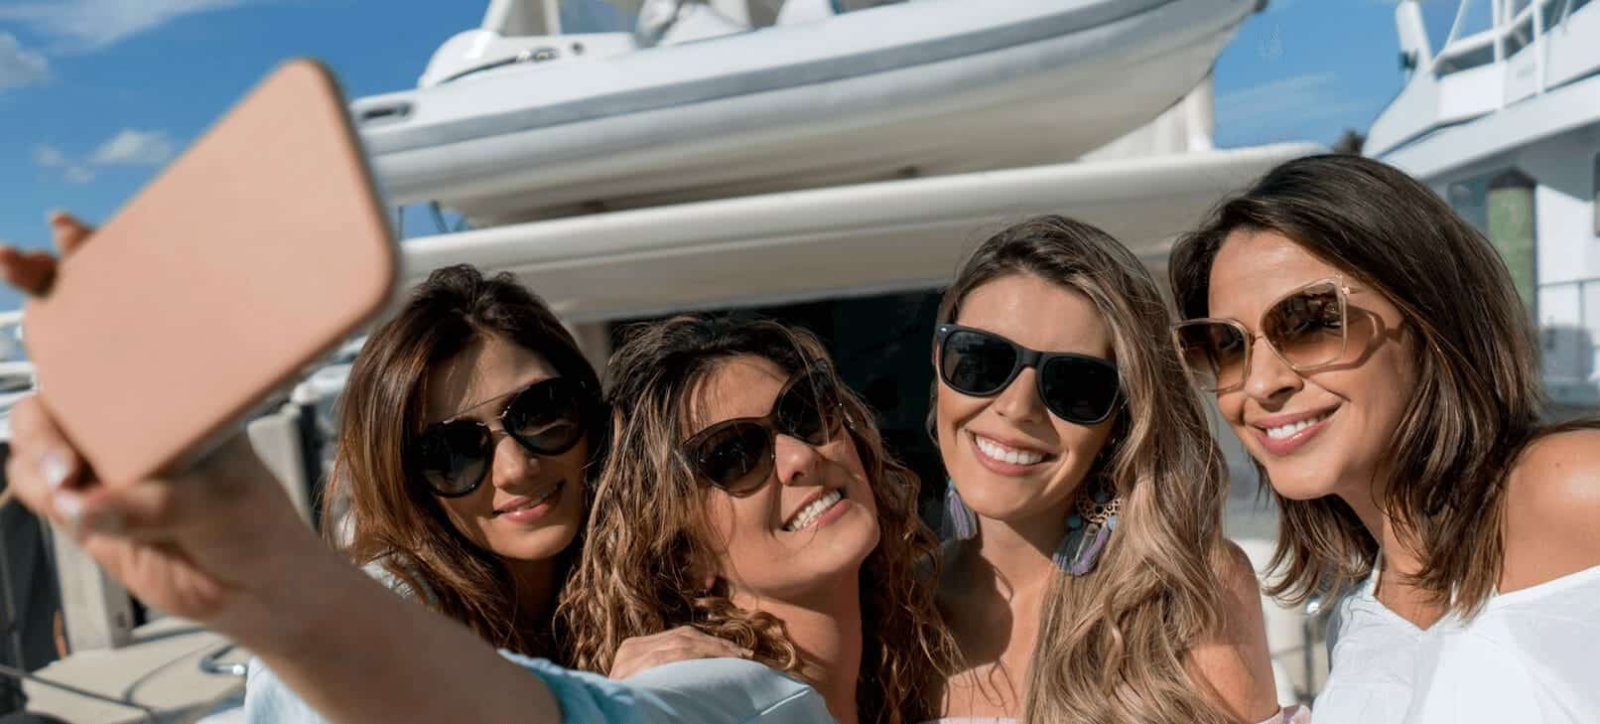 4 women taking selfie on boat